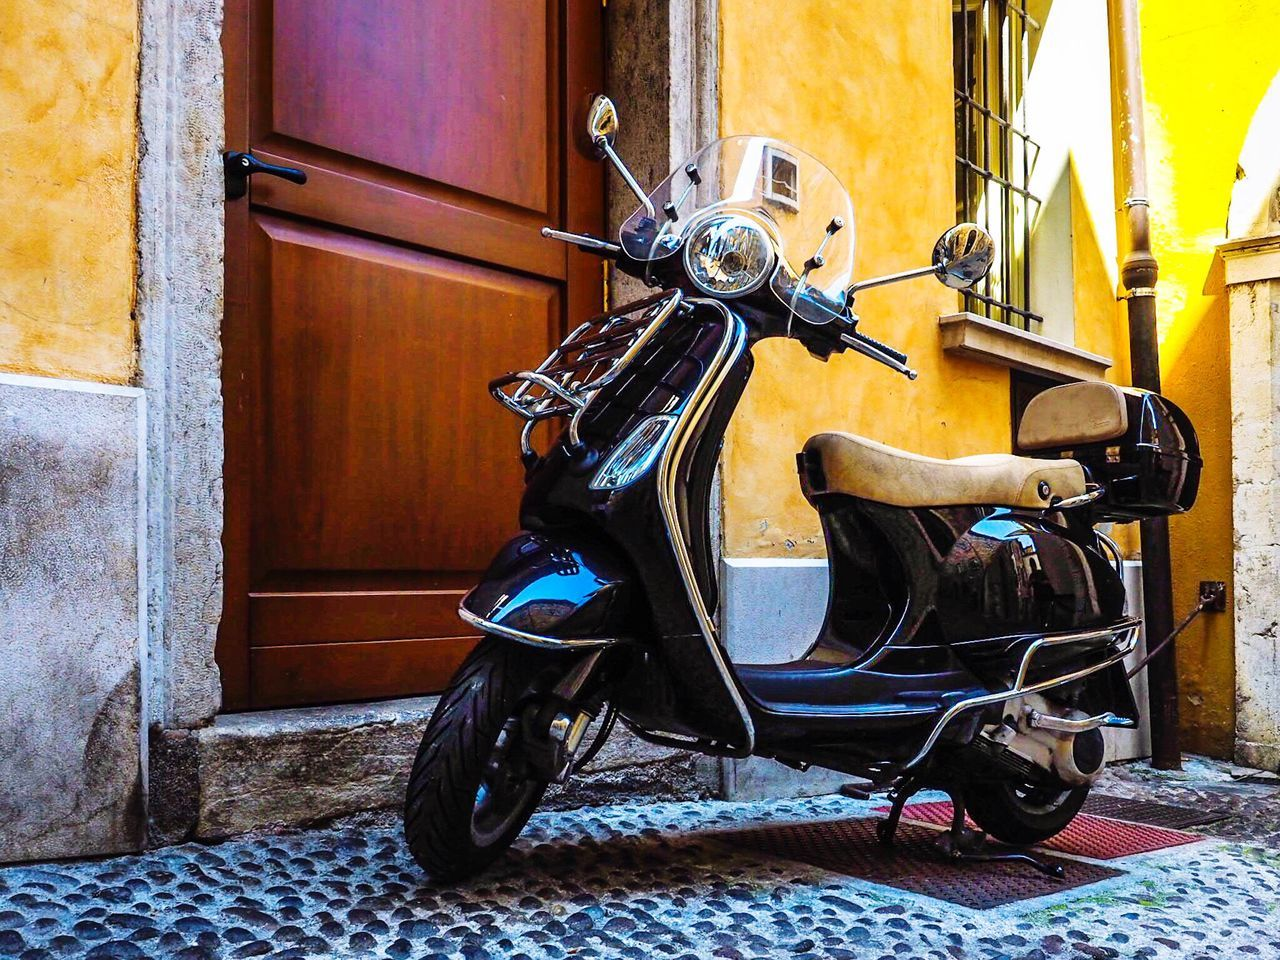 Vespa Scooter in Desenzano del Garda - Italy 🇮🇹 Transportation Land Vehicle Motorcycle Day Mode Of Transport Scooter Italy Vespa Vintage Classic Ride Freedoom  No People Youth Desenzano Holiday Vacations